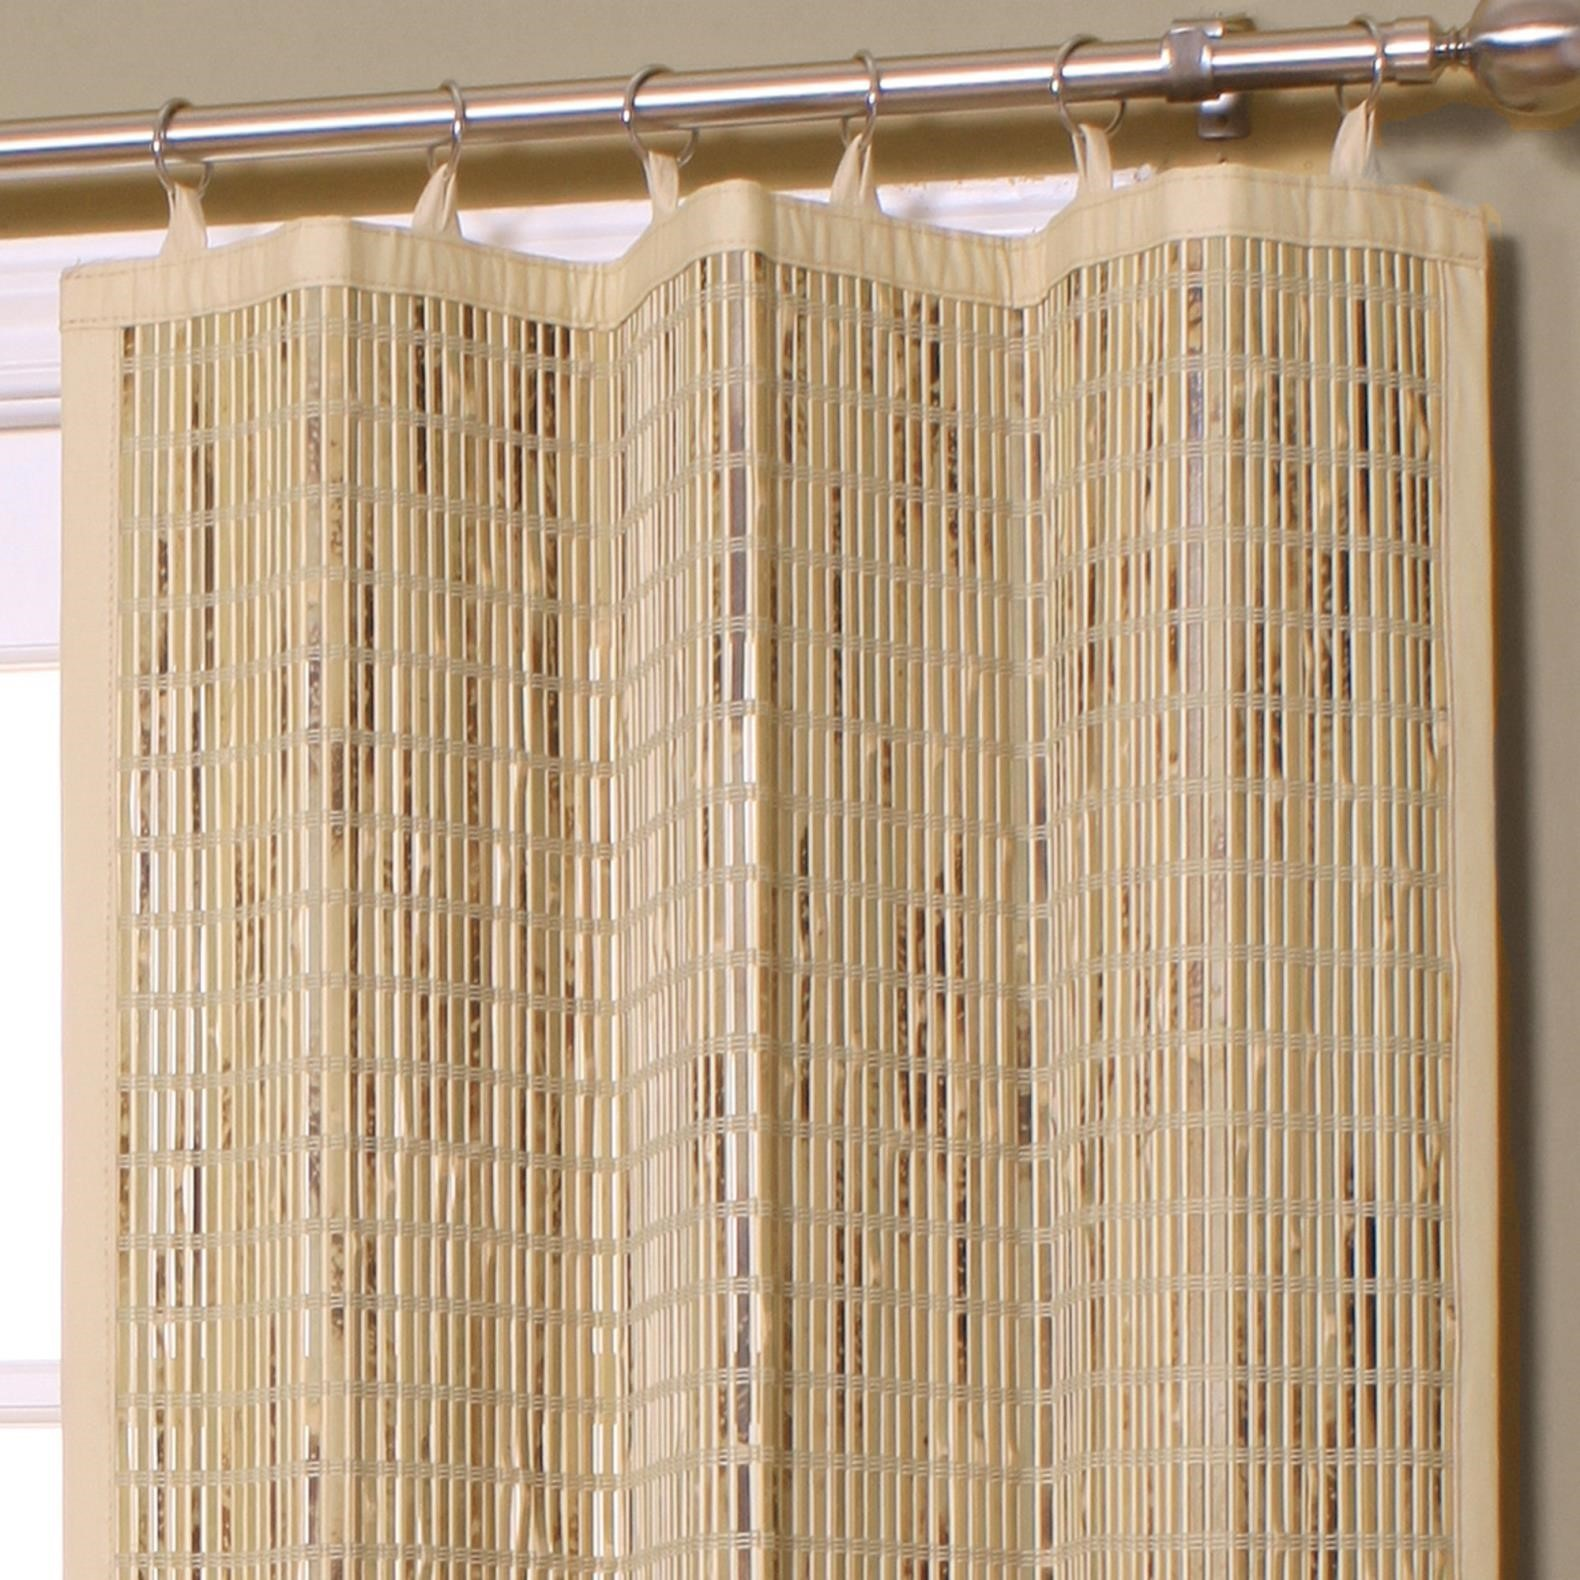 Blackout Roller Shades Lowes | Lowes Shades | Blinds From Lowes